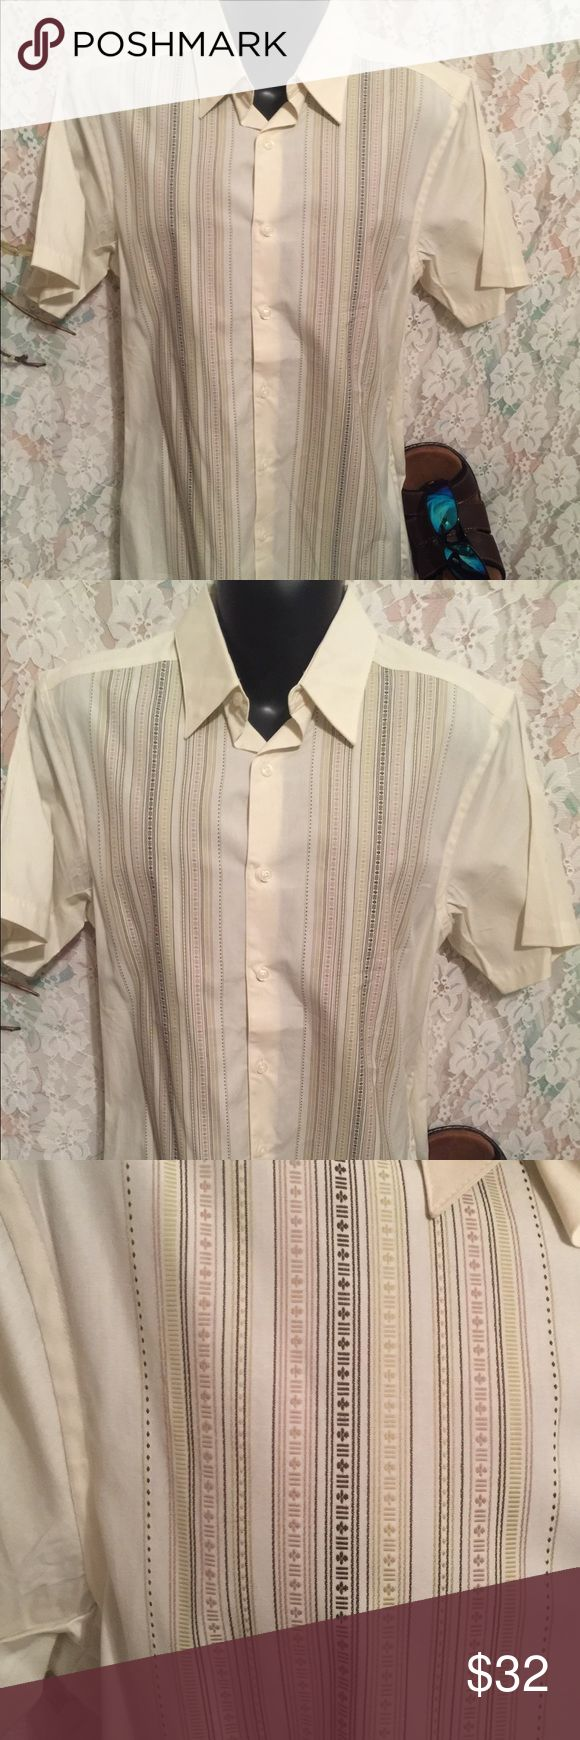 "Geoffrey Beene men's short sleeve shirt Comfortable and stylish men's dress shirt. Measures 24"" underarm to underarm and 27"" shoulder to hem.   Geoffrey Beene men's short sleeve shirt green and brown lines Geoffrey Beene Shirts Casual Button Down Shirts"